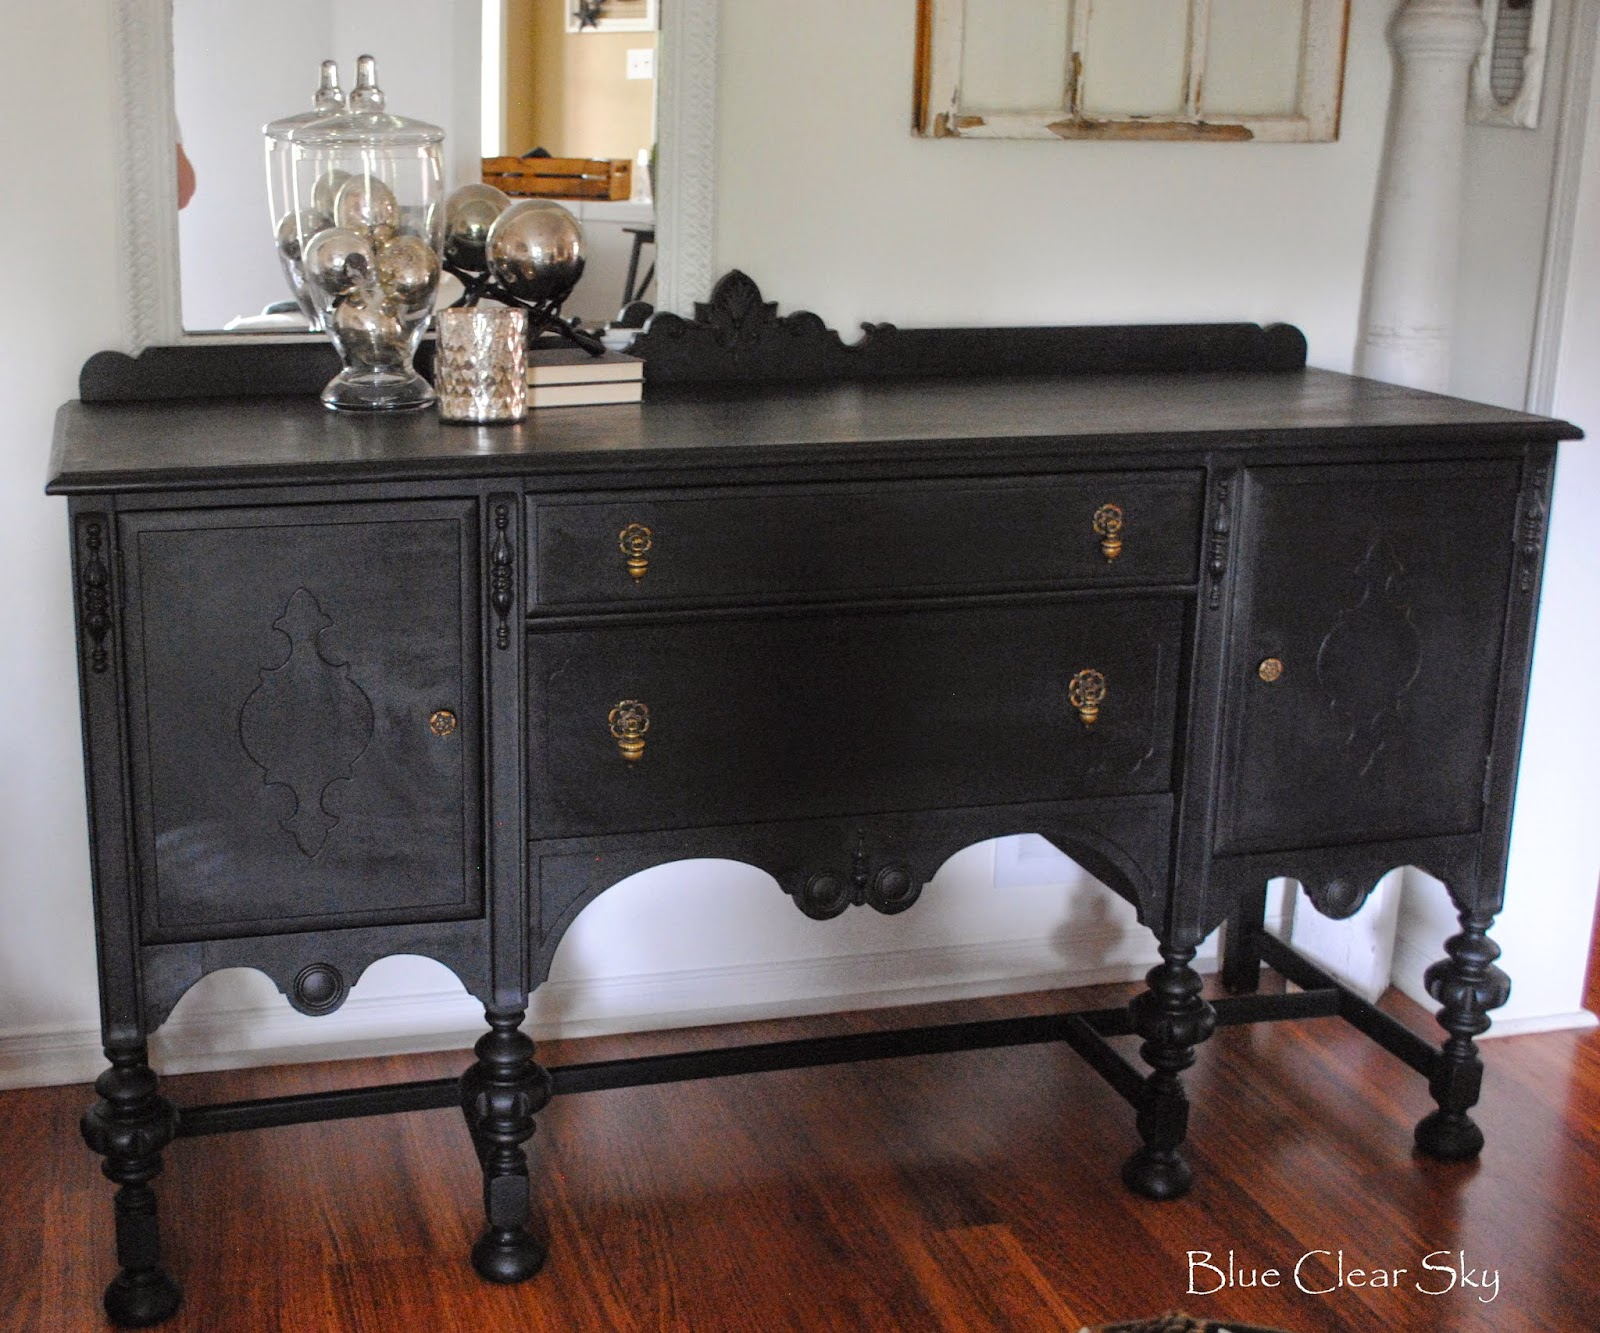 Rustic Maple: General Finishes Lamp Black Vintage Sideboard